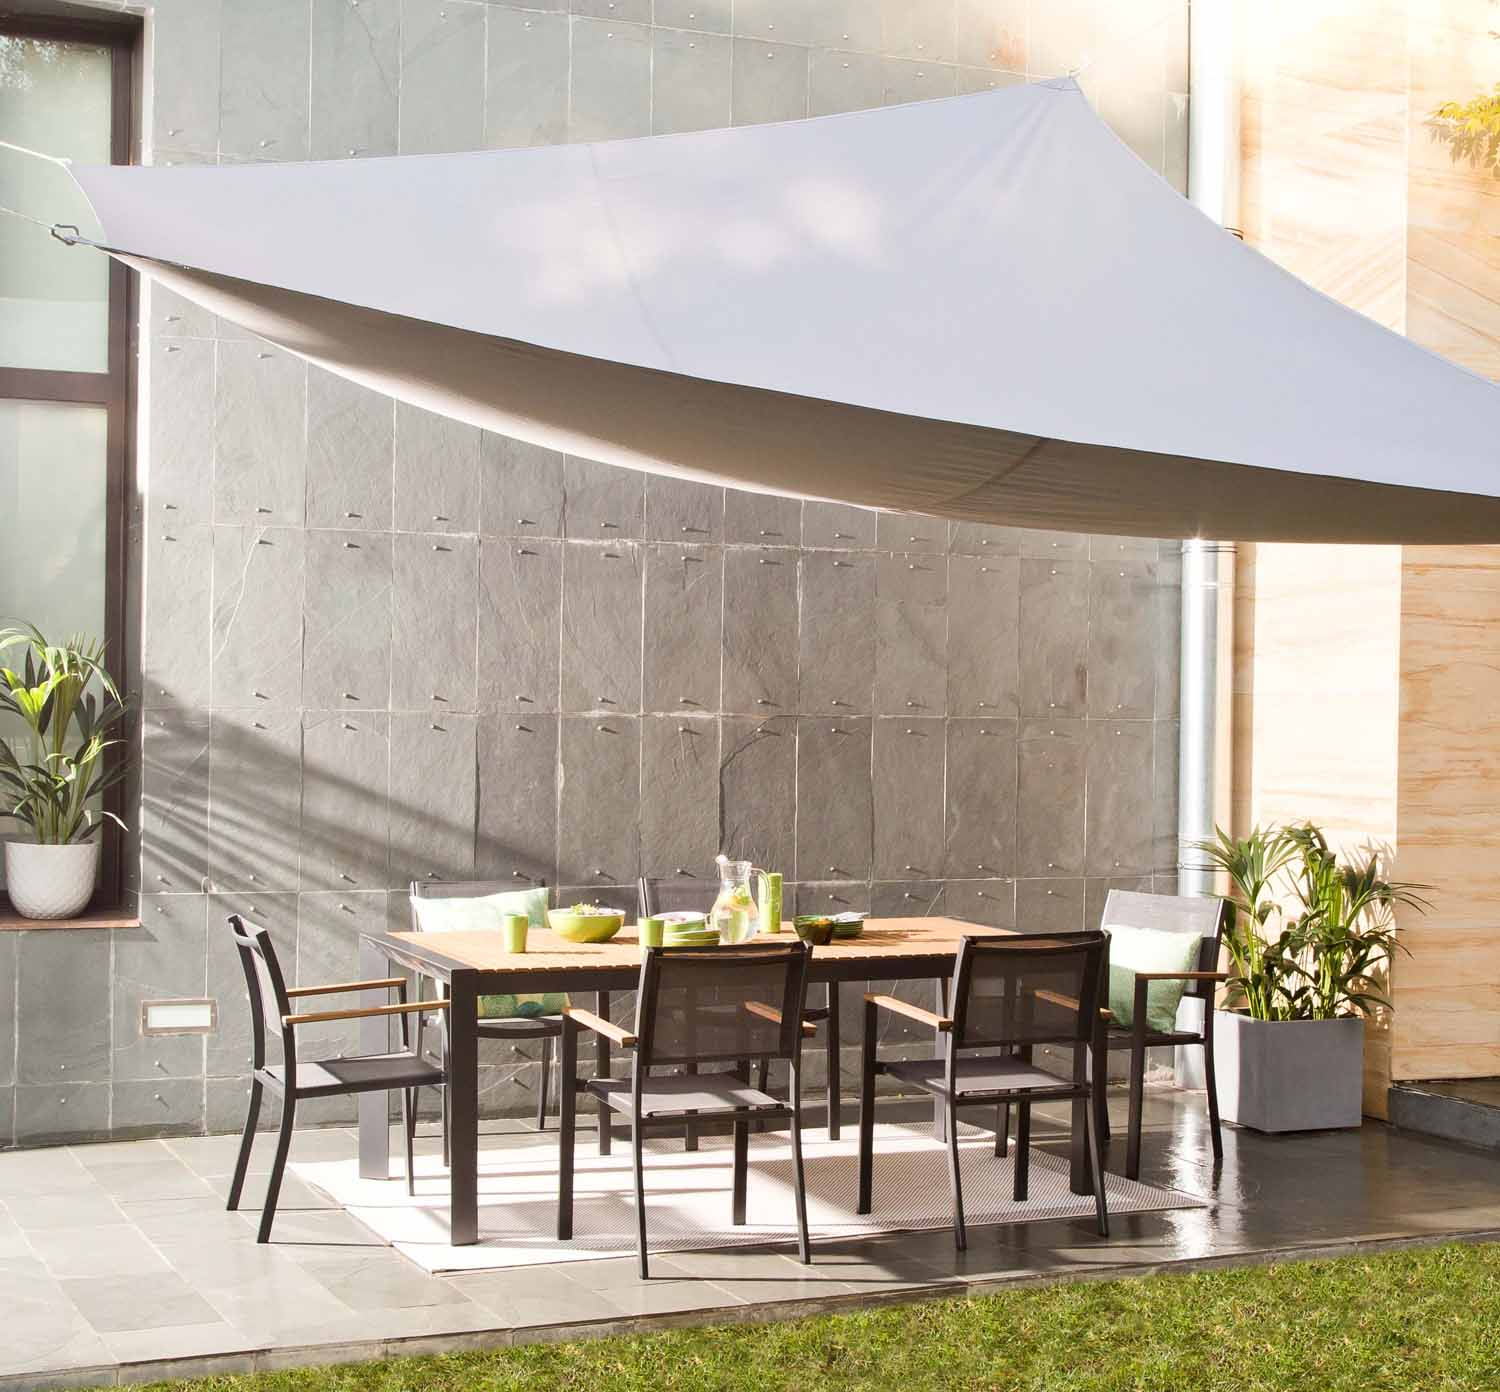 Voile D Ombrage Triangulaire Anthracite L 400 X L 300 Cm Leroy Merlin